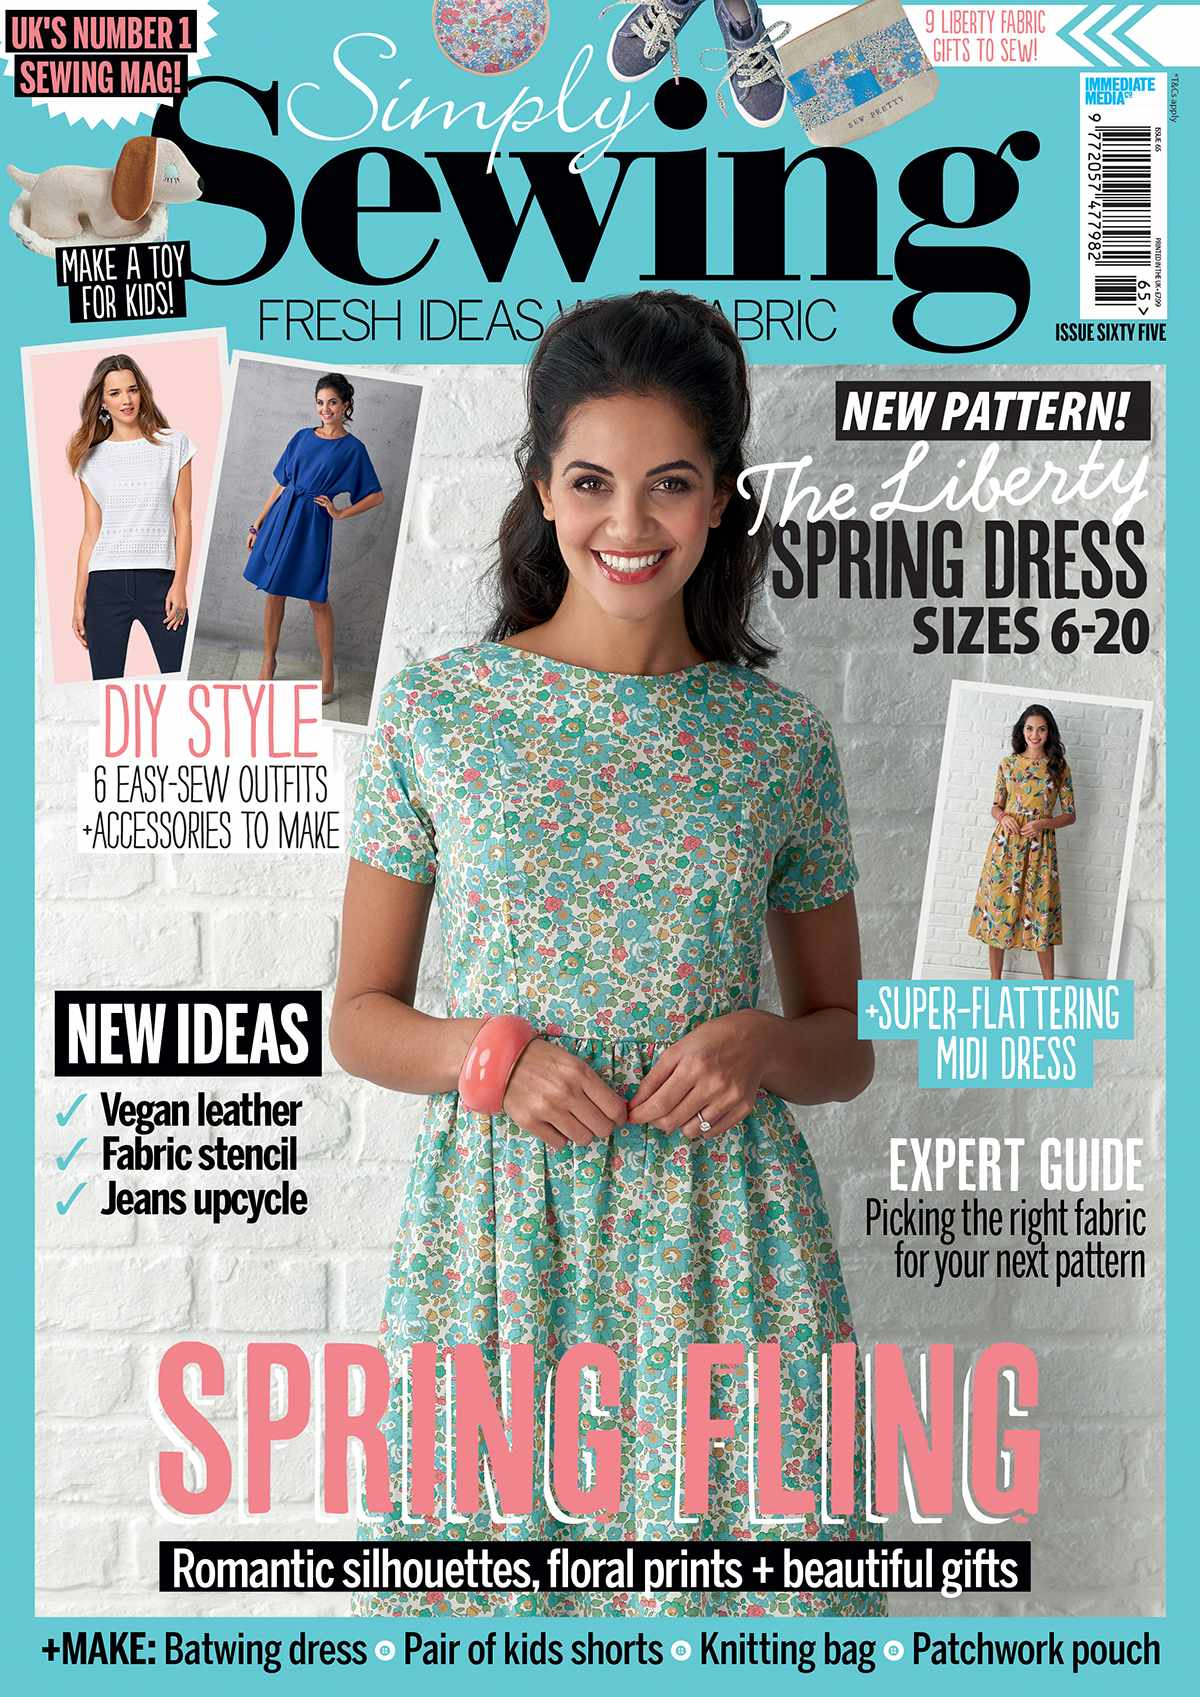 Simply Sewing magazine issue 65 cover